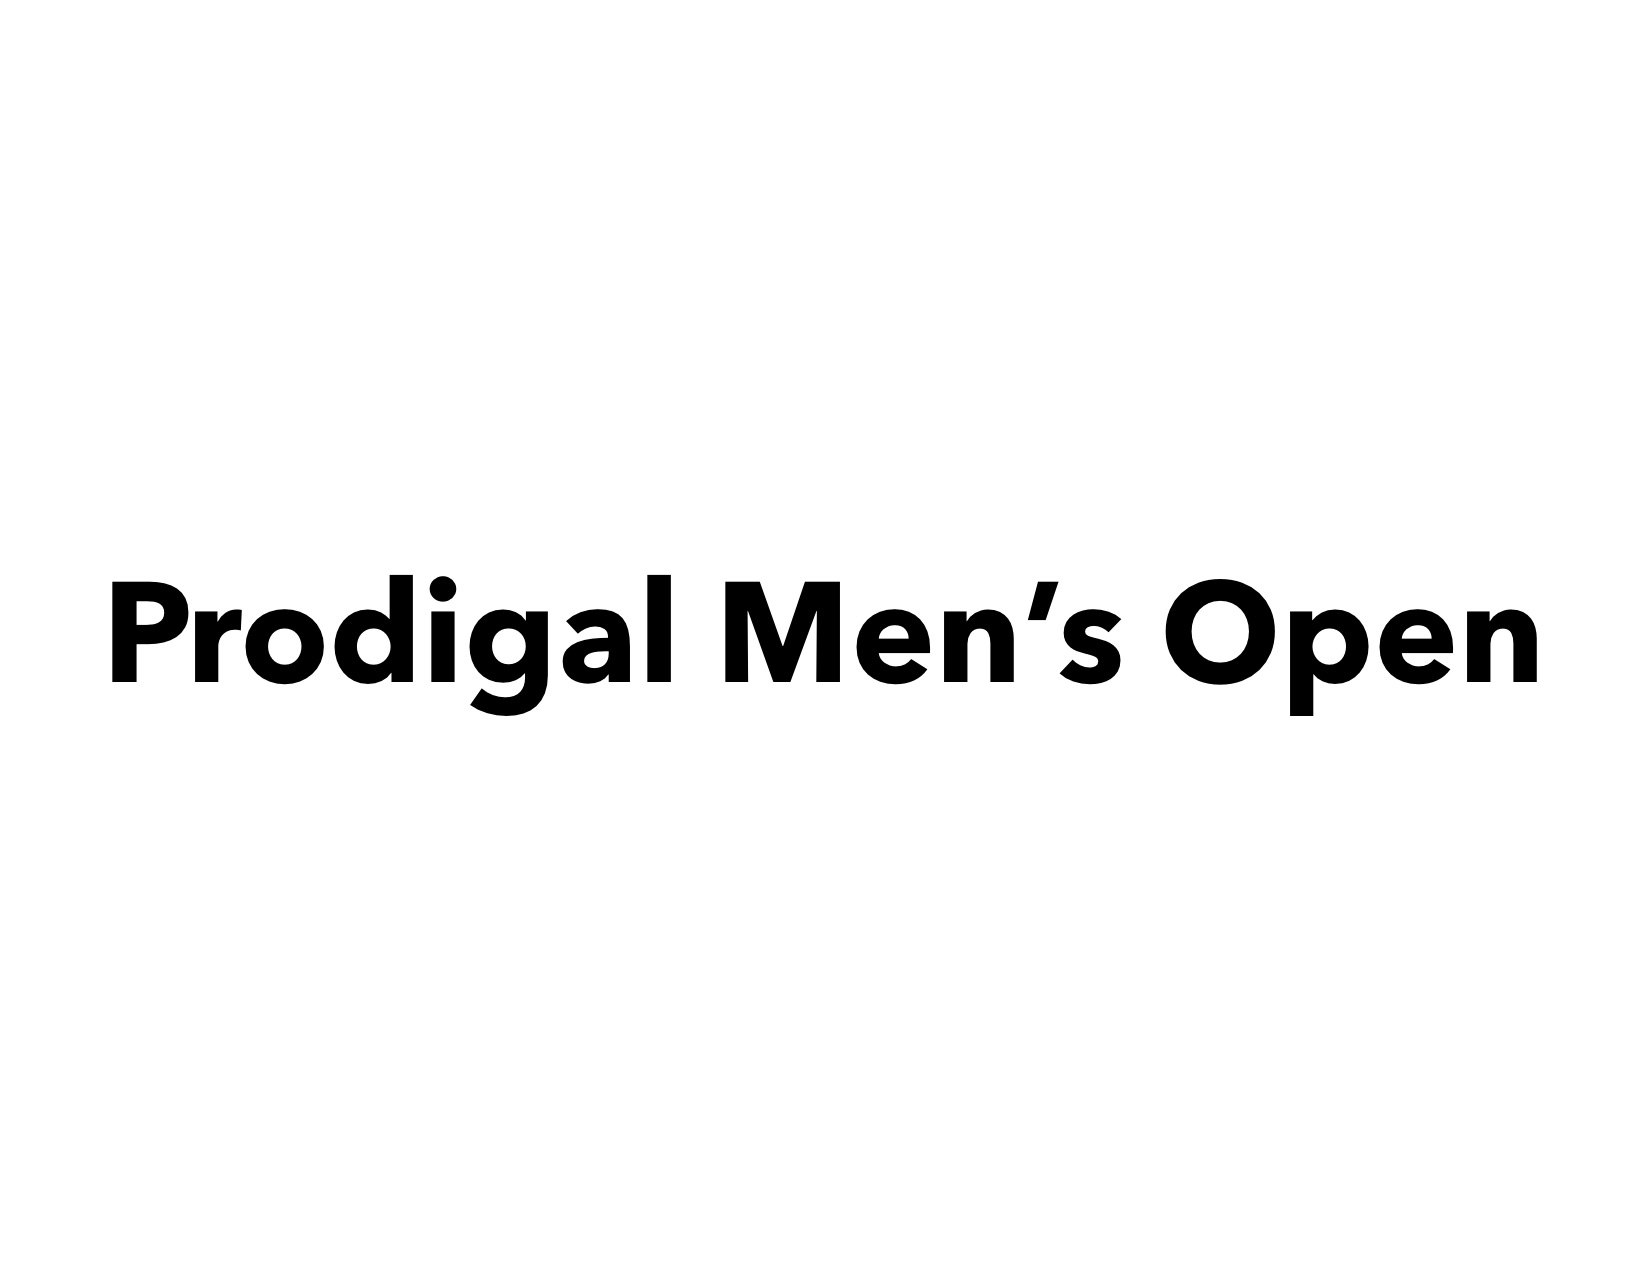 Prodigal Men's Open